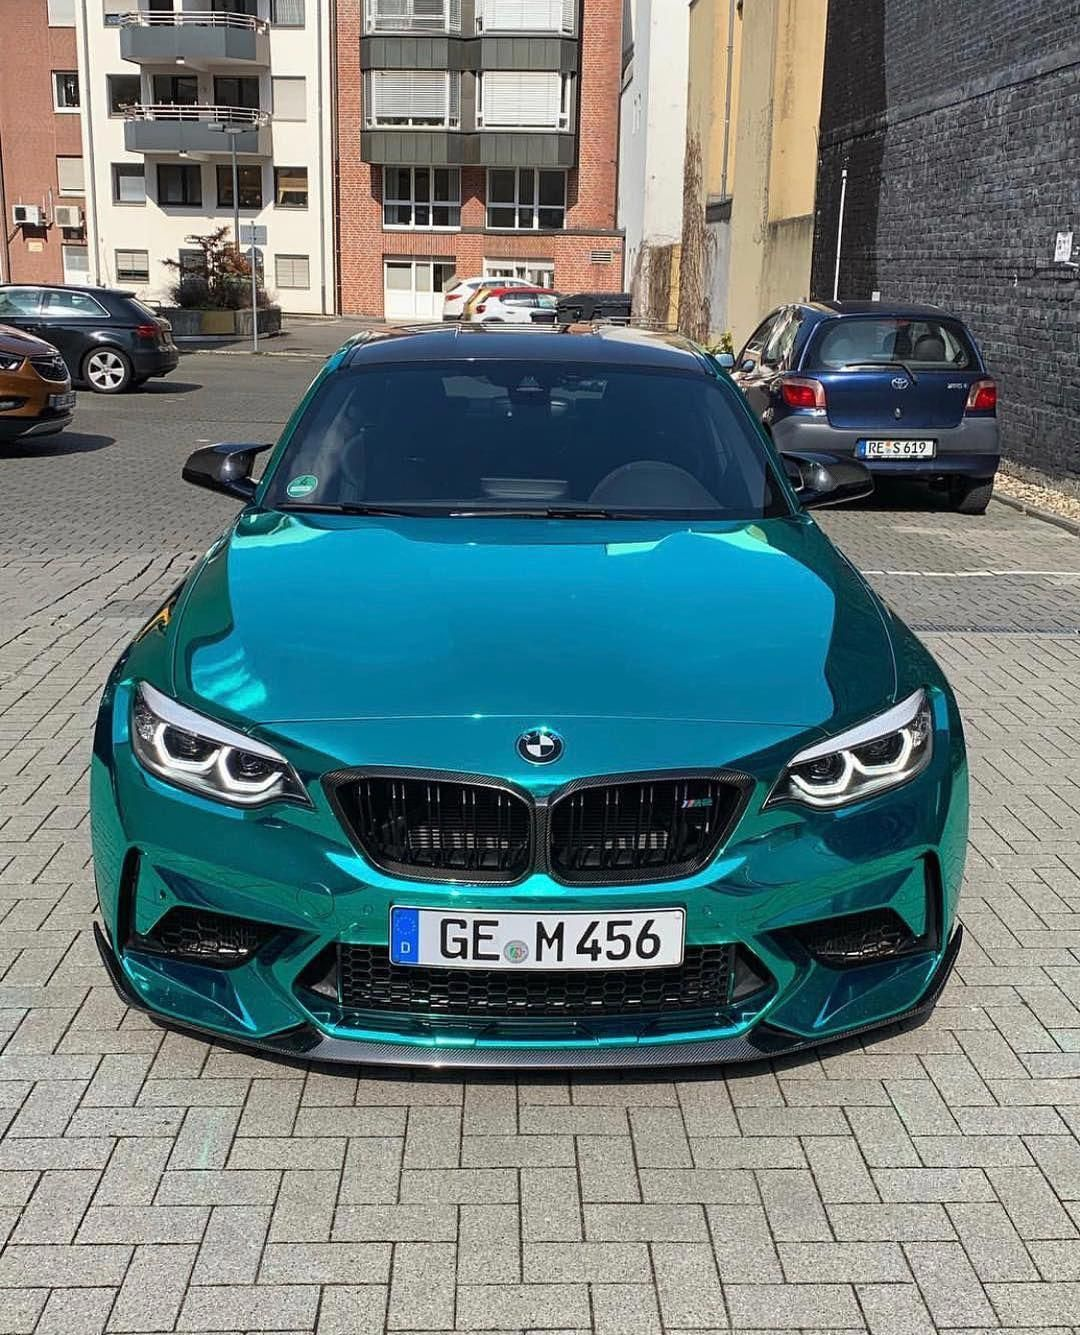 Bmw F87 M2 In Hexis Gloss Turquoise Super Chrome Wrap Super Cars